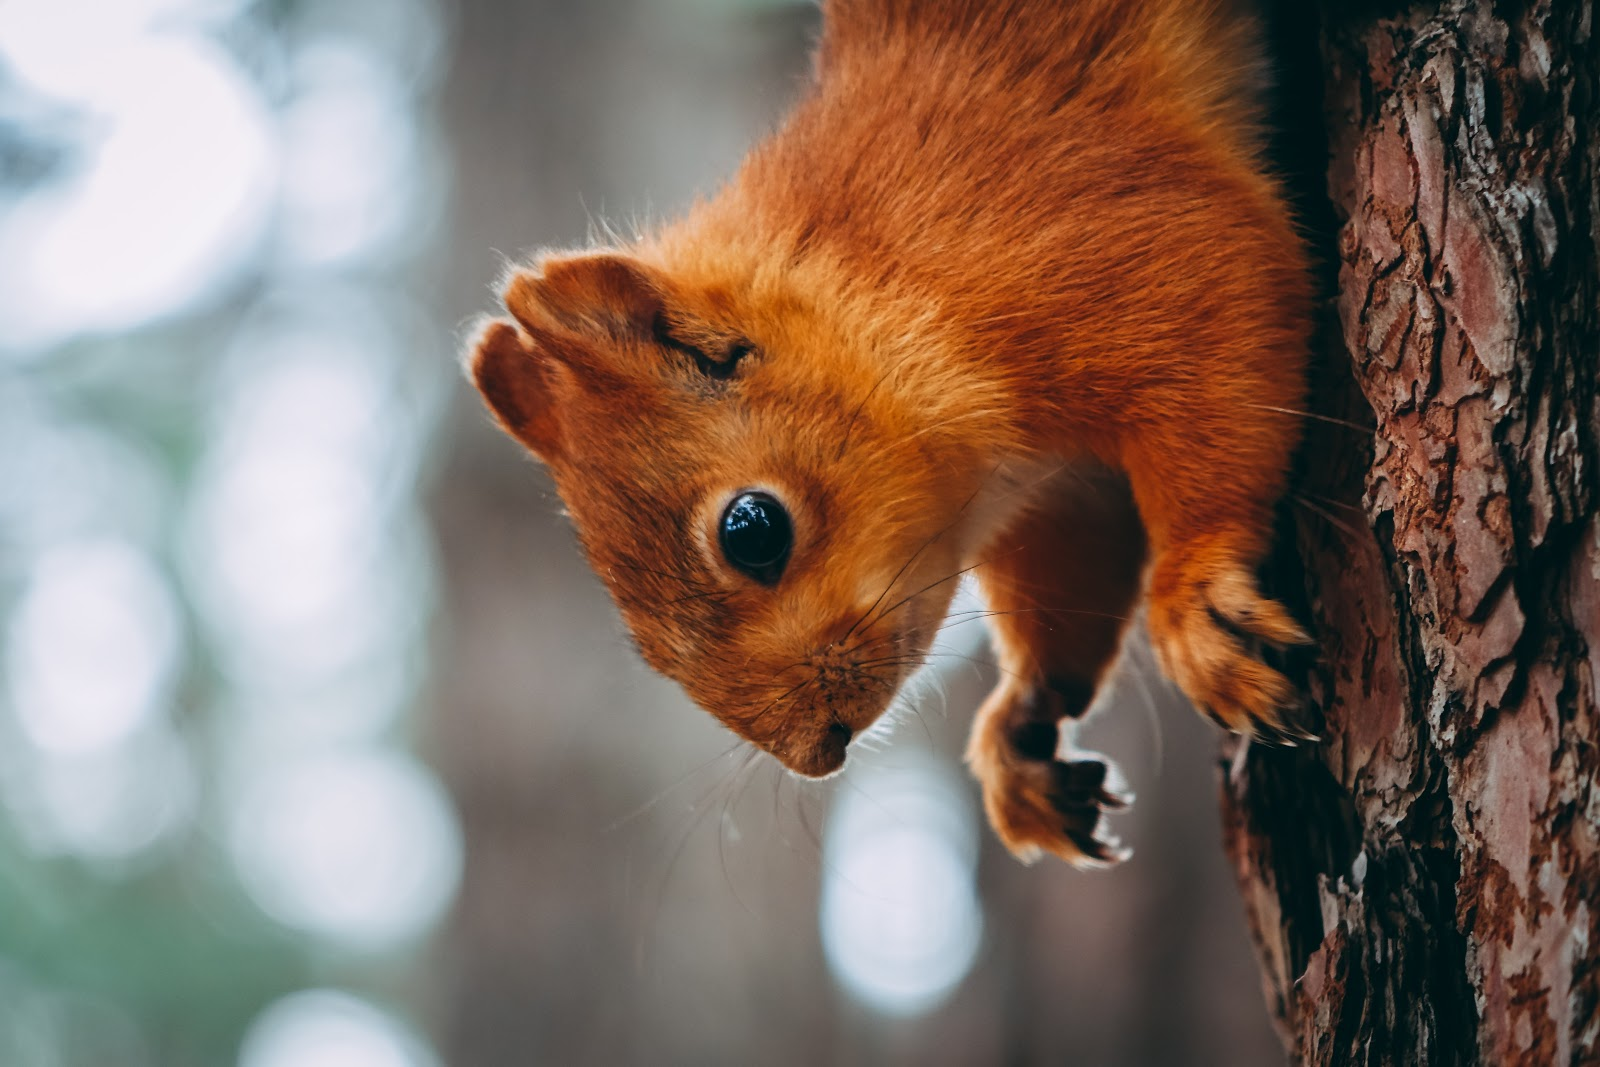 Red tree squirrel close-up with blurred background